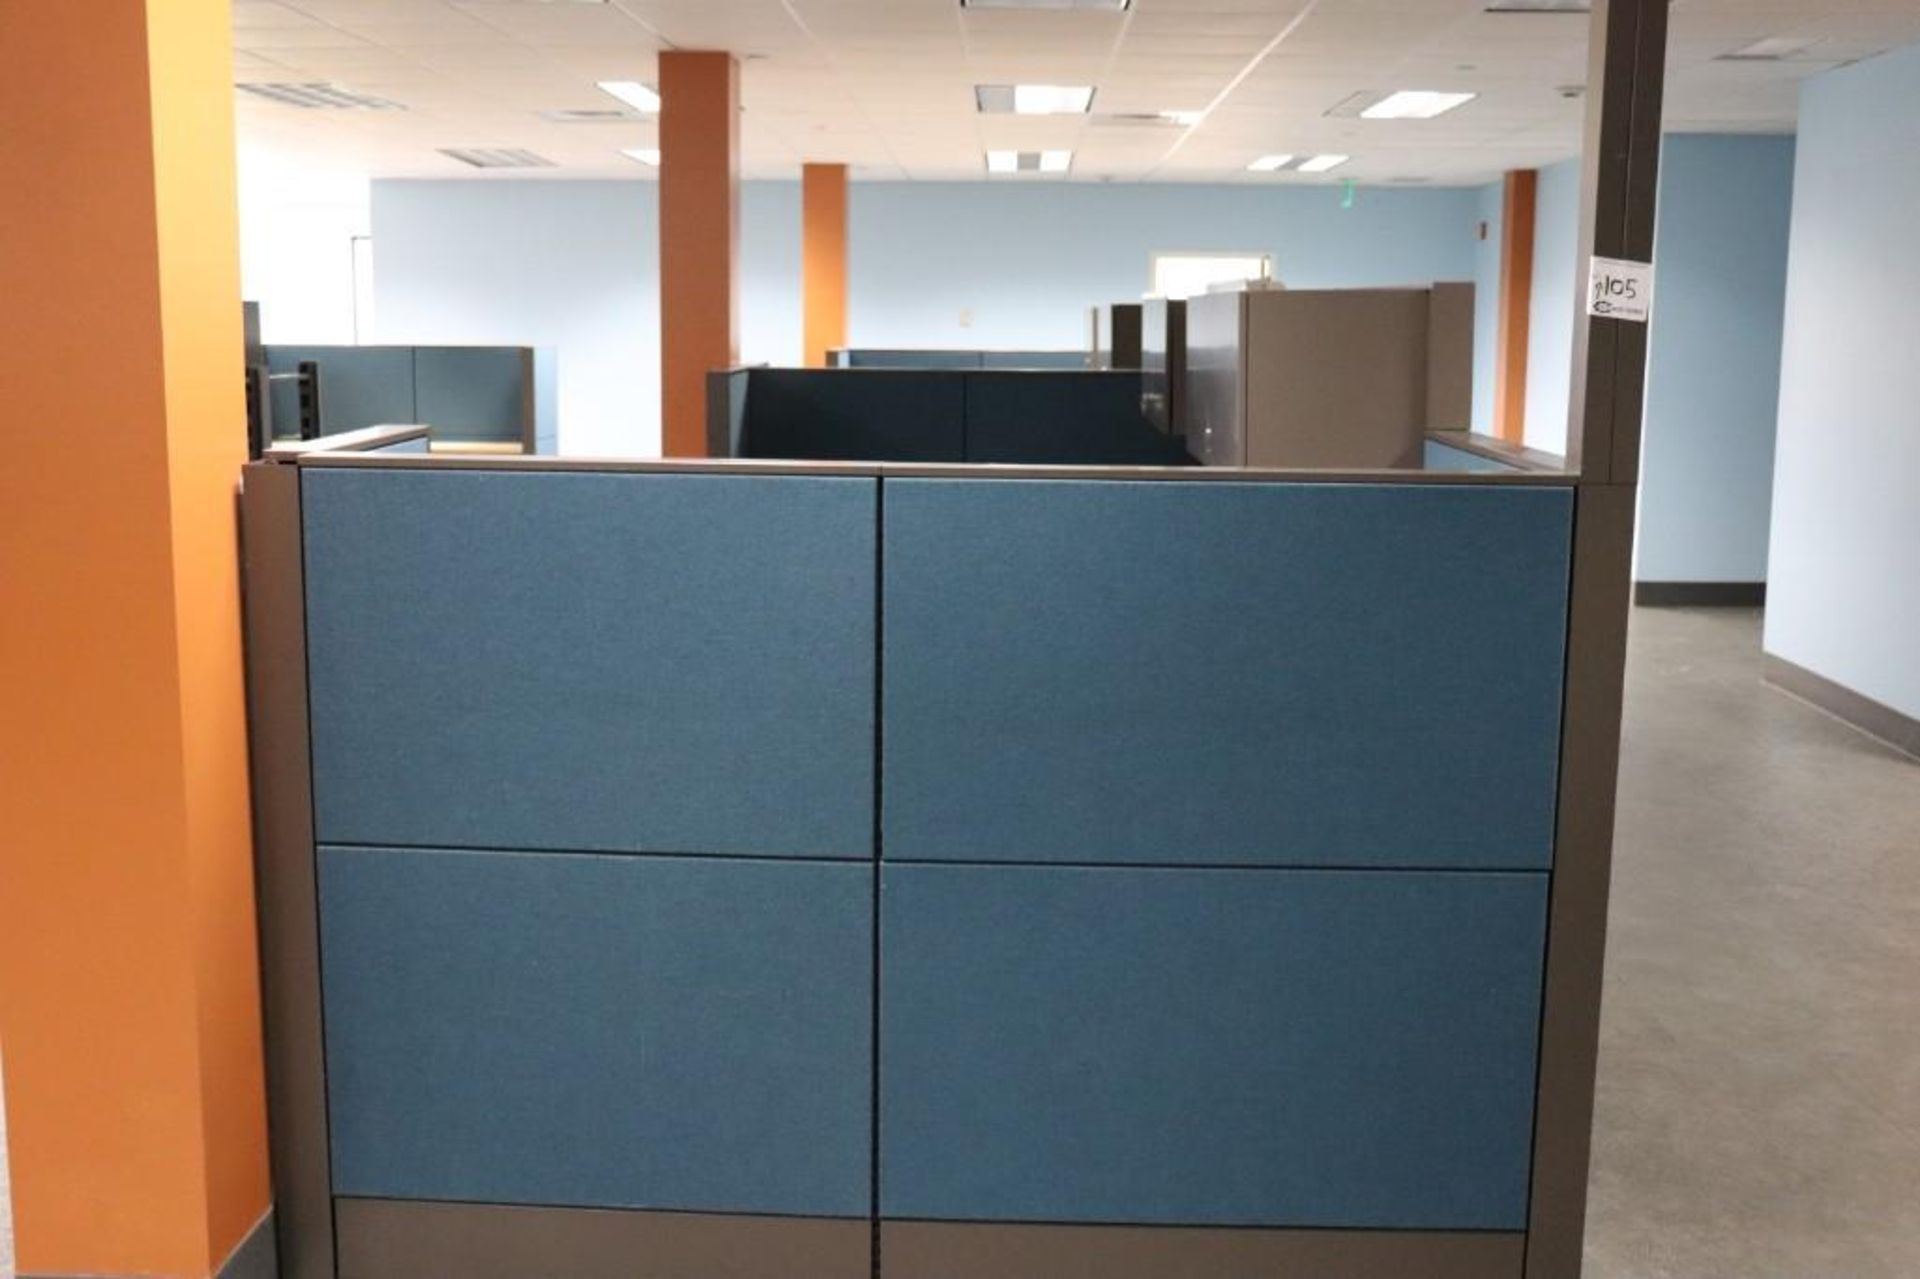 Office cubicle sections - Image 5 of 5